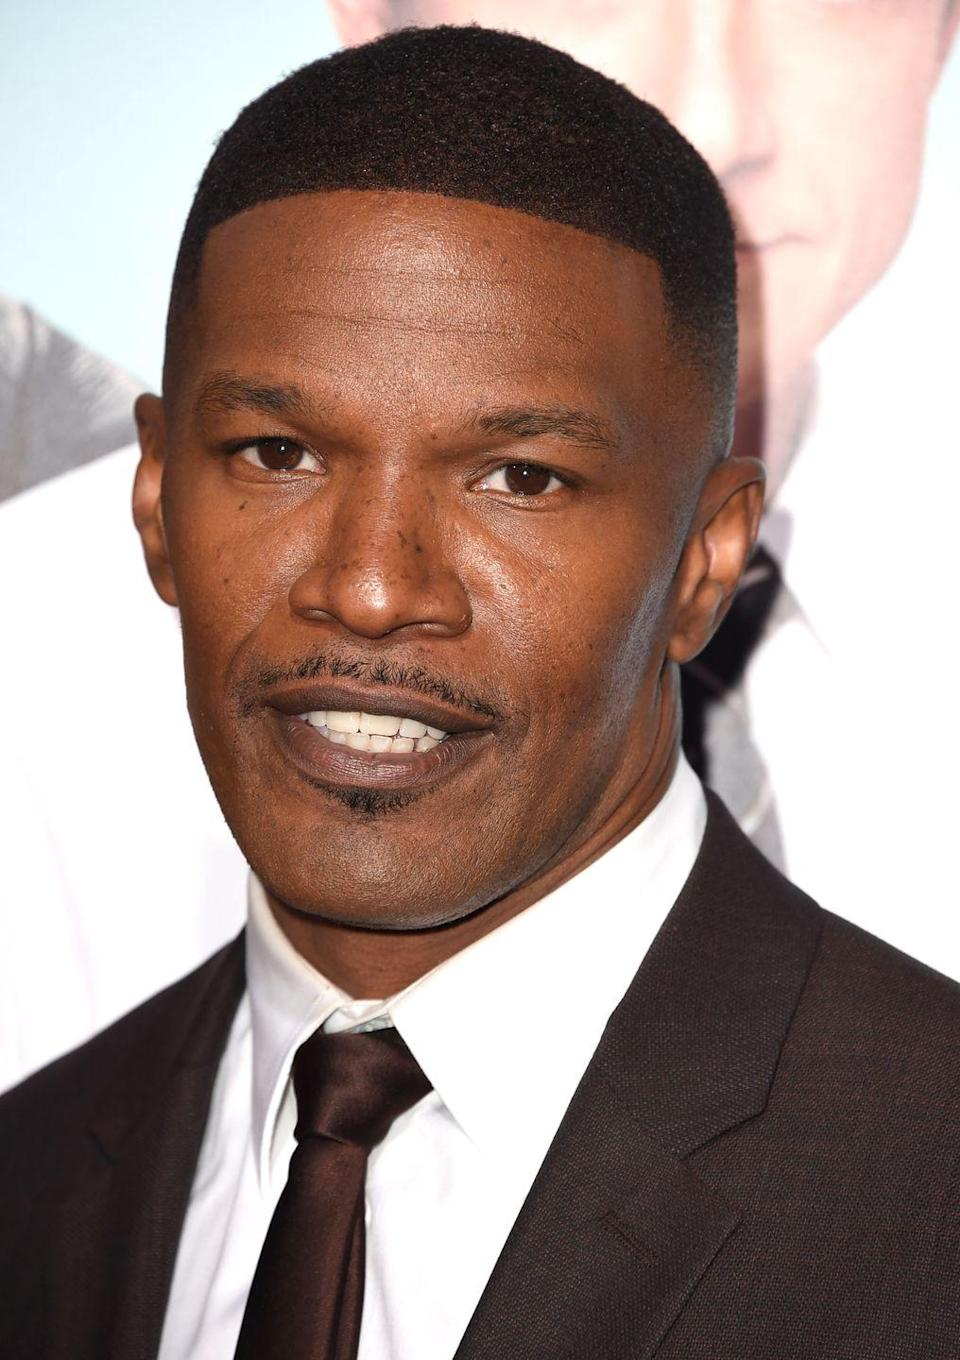 "<p>During his promotion for <em>The Kingdom</em>, Foxx reportedly said he was glad he didn't have to lie and say it was good like he'd had to with <em>Stealth. </em>He also <a href=""http://www.hollywood.com/movies/jamie-foxx-stealth-was-a-bad-film-57169712/"" rel=""nofollow noopener"" target=""_blank"" data-ylk=""slk:said,"" class=""link rapid-noclick-resp"">said,</a> ""Sometimes you do a movie and you have to go promote it, so on <em>Stealth </em>I was like, 'Yeah, this is the greatest.' And people would see me after seeing the movie and say, 'I can't believe you lied to me like that.'""</p>"